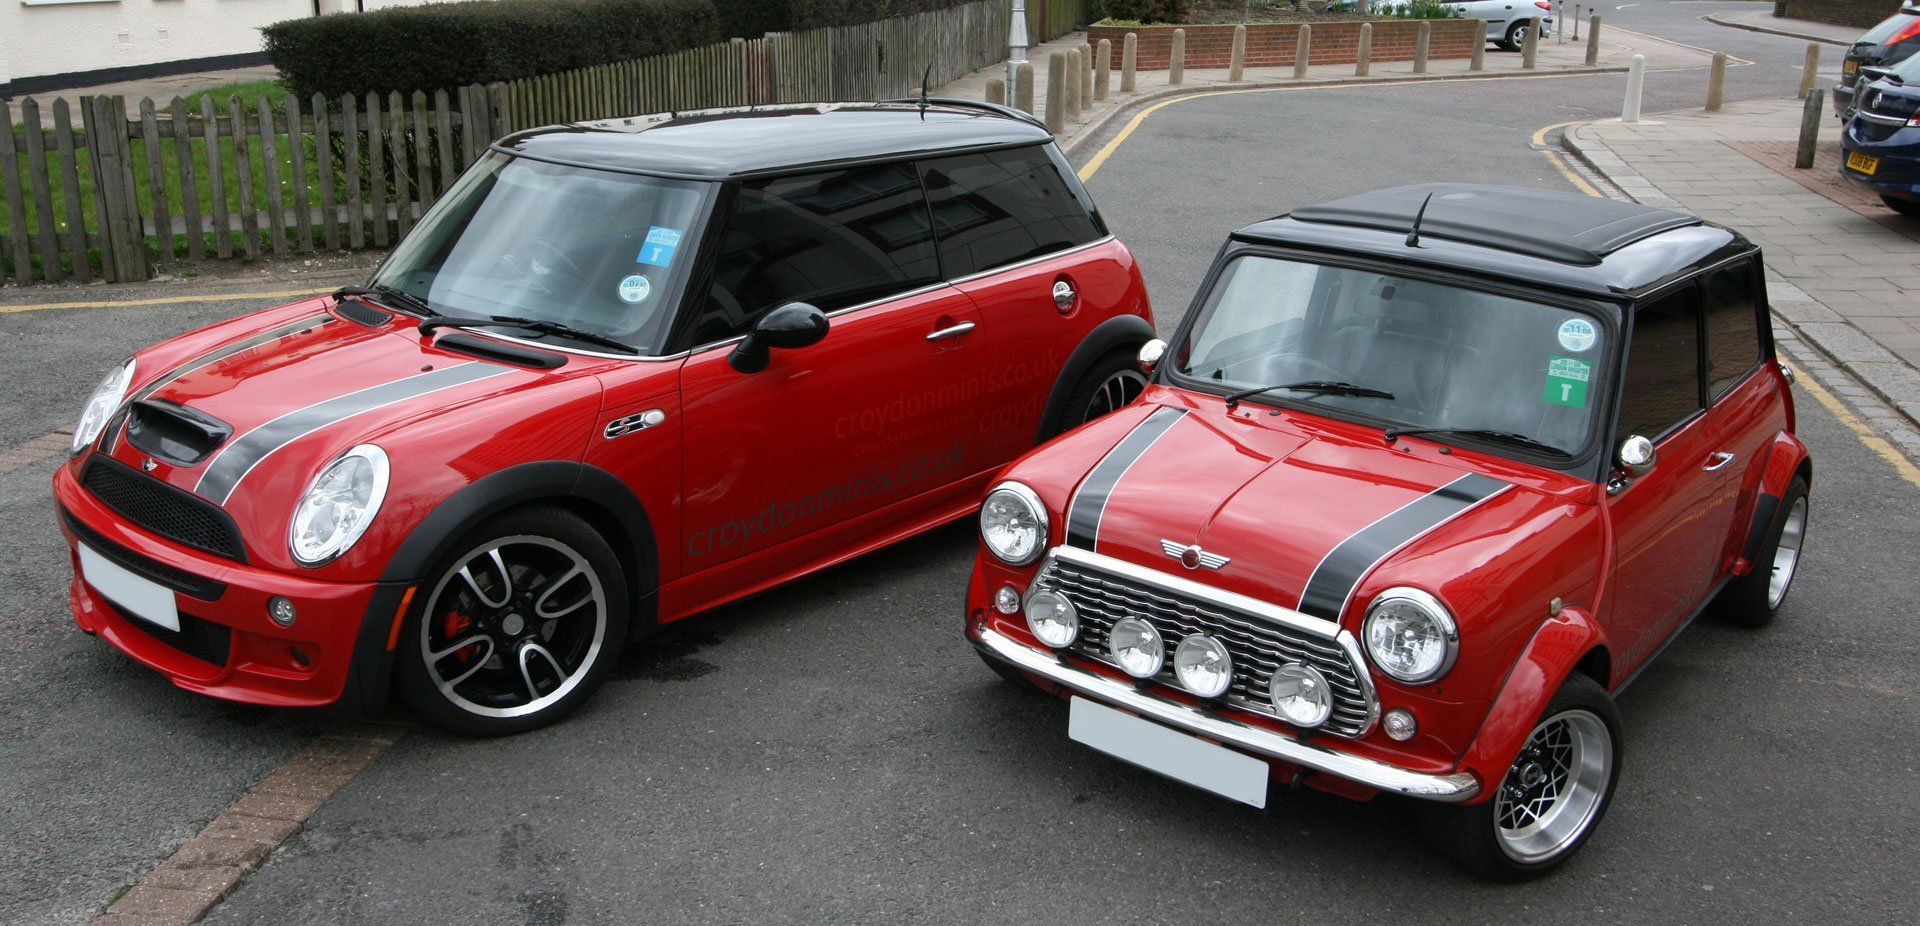 specialists in classic Minis